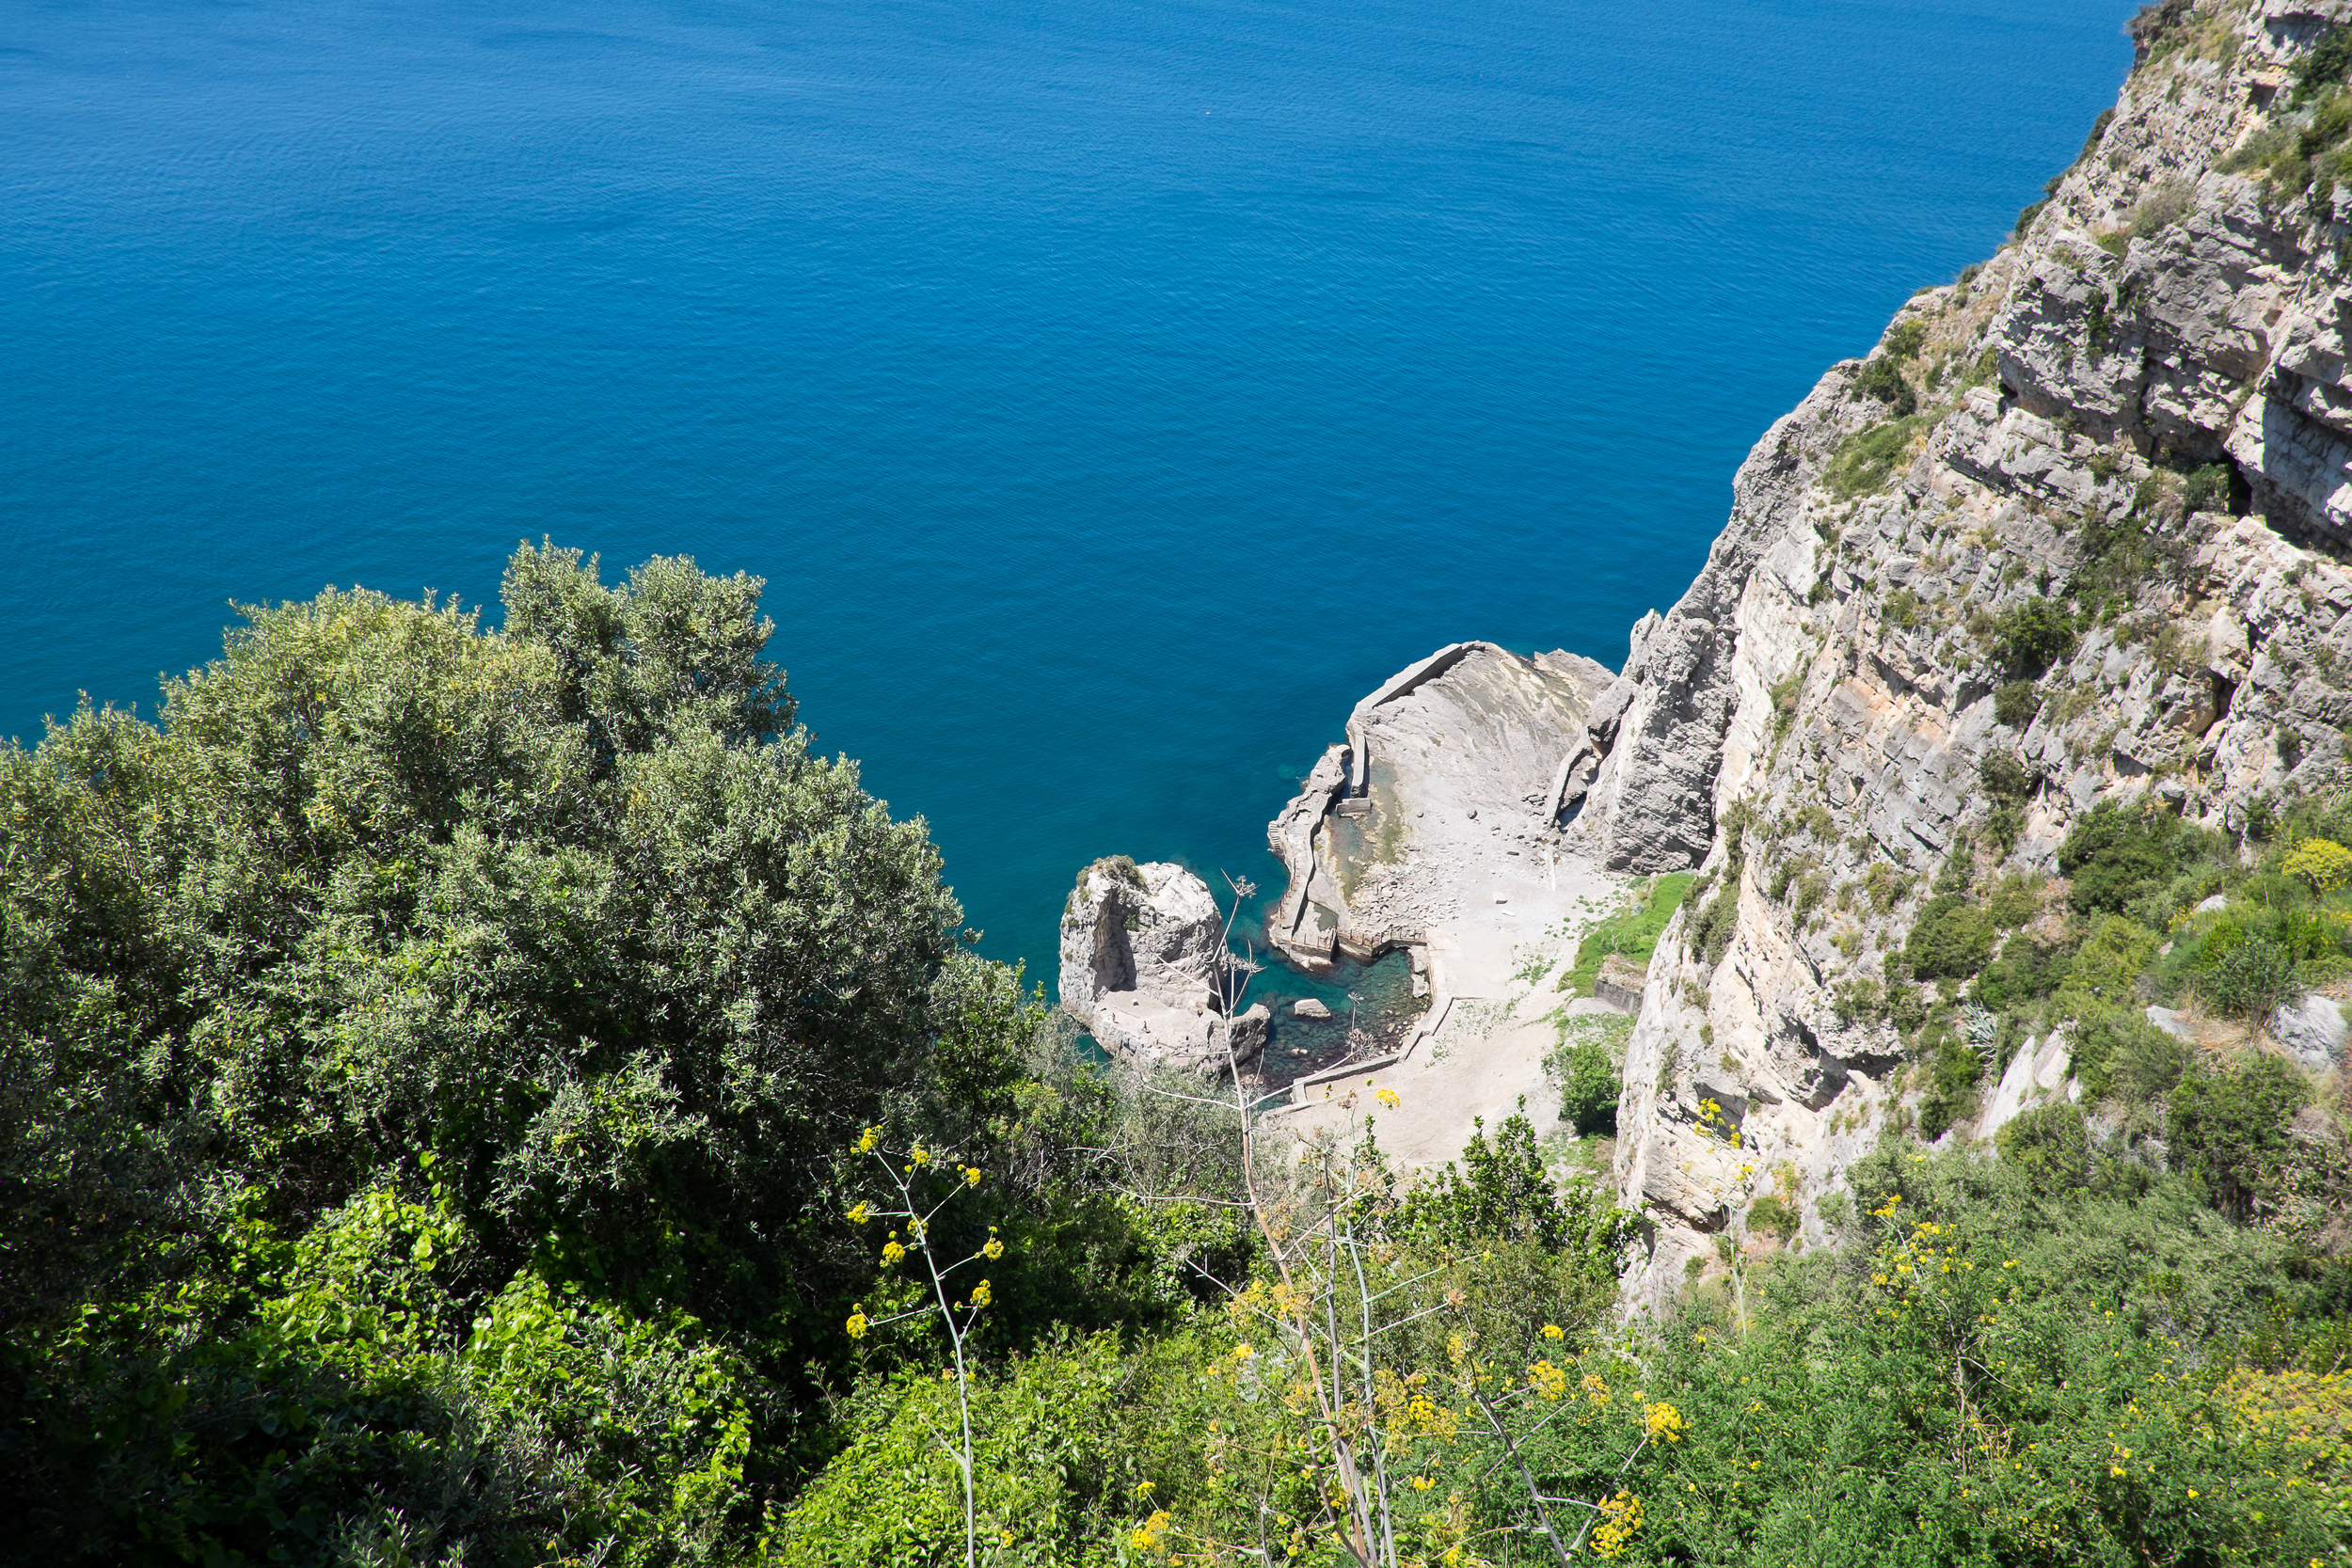 After the museum, we headed to Sorrento, catching our first glimpses of the Sorrento Peninsula and then the Amalfi Coast.